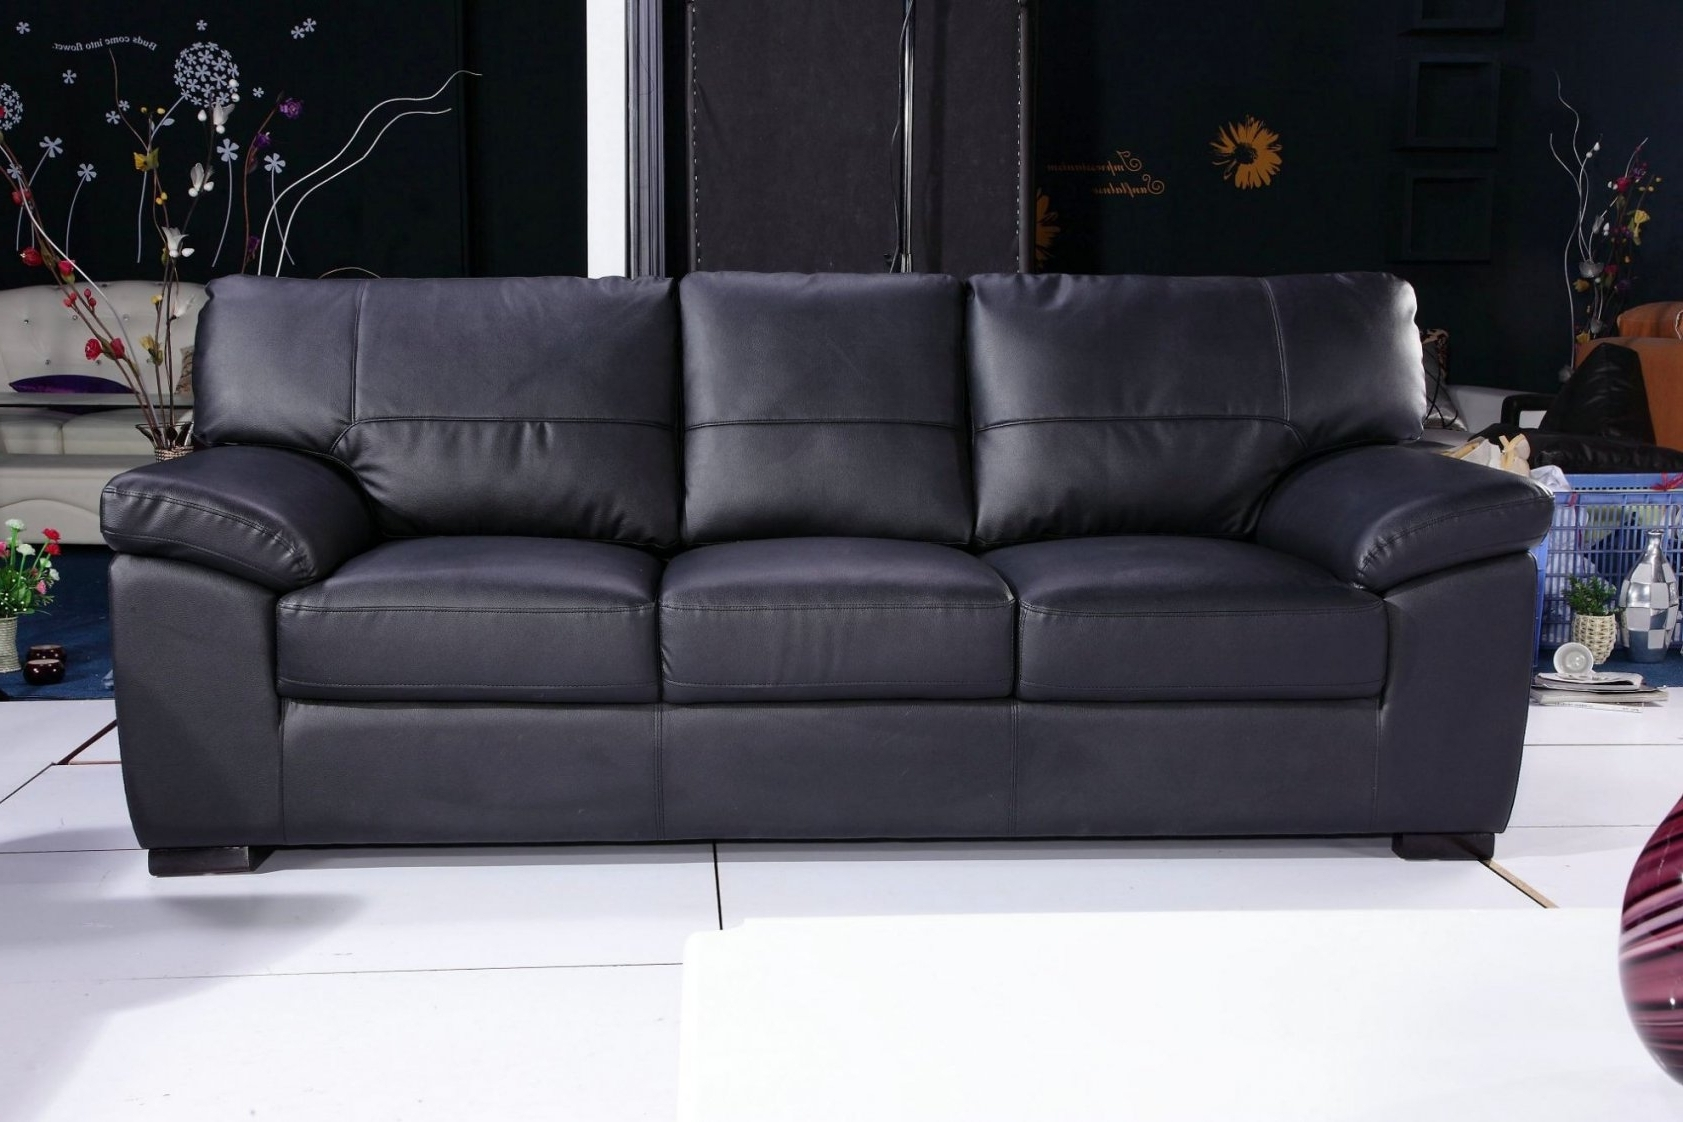 2018 3 Seater Leather Sofas Inside 3 Seater Black Leather Sofa (View 2 of 20)